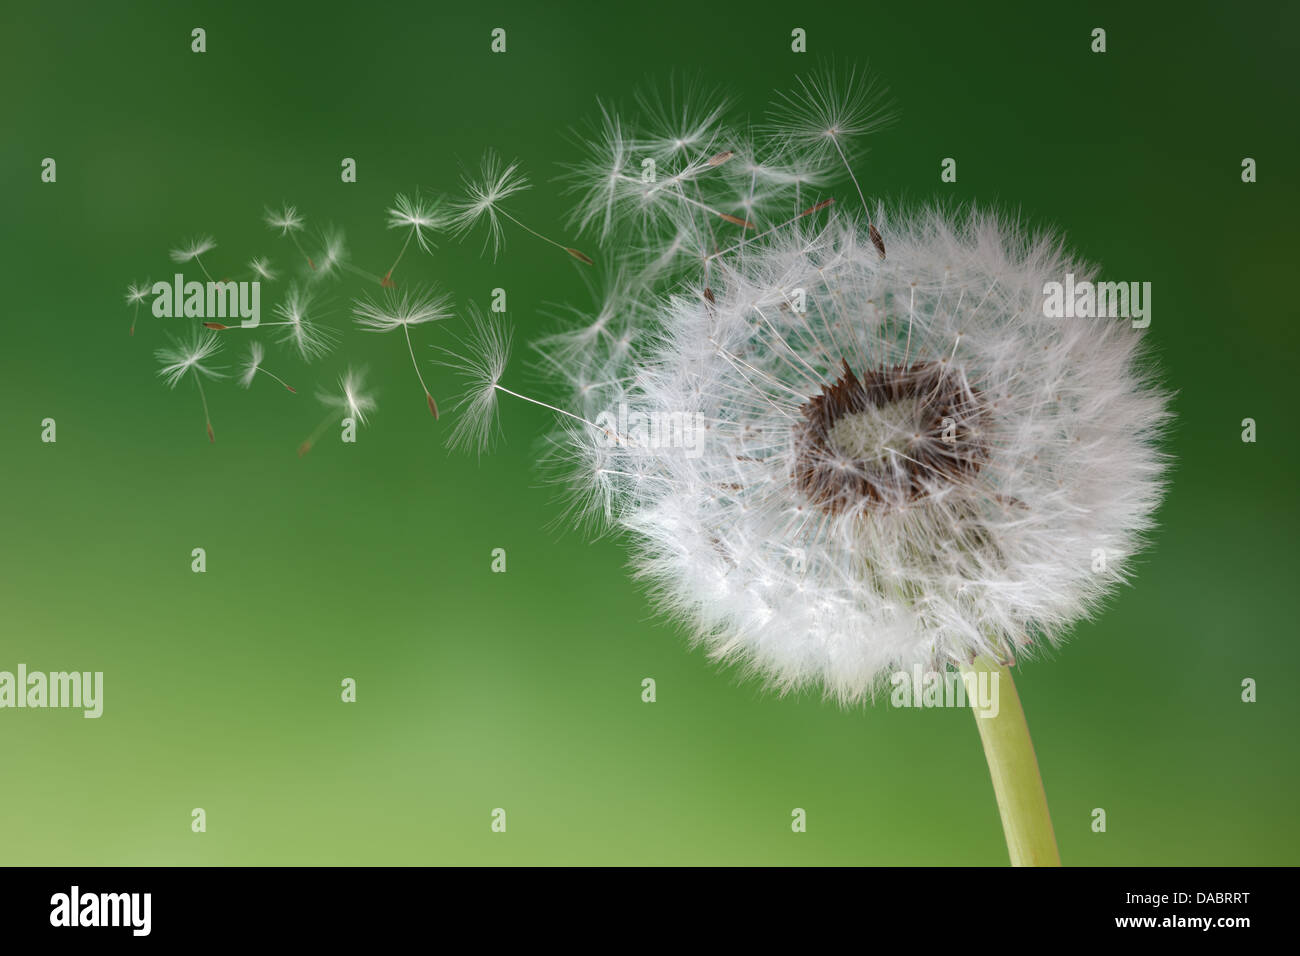 Dandelion clock in morning mist - Stock Image